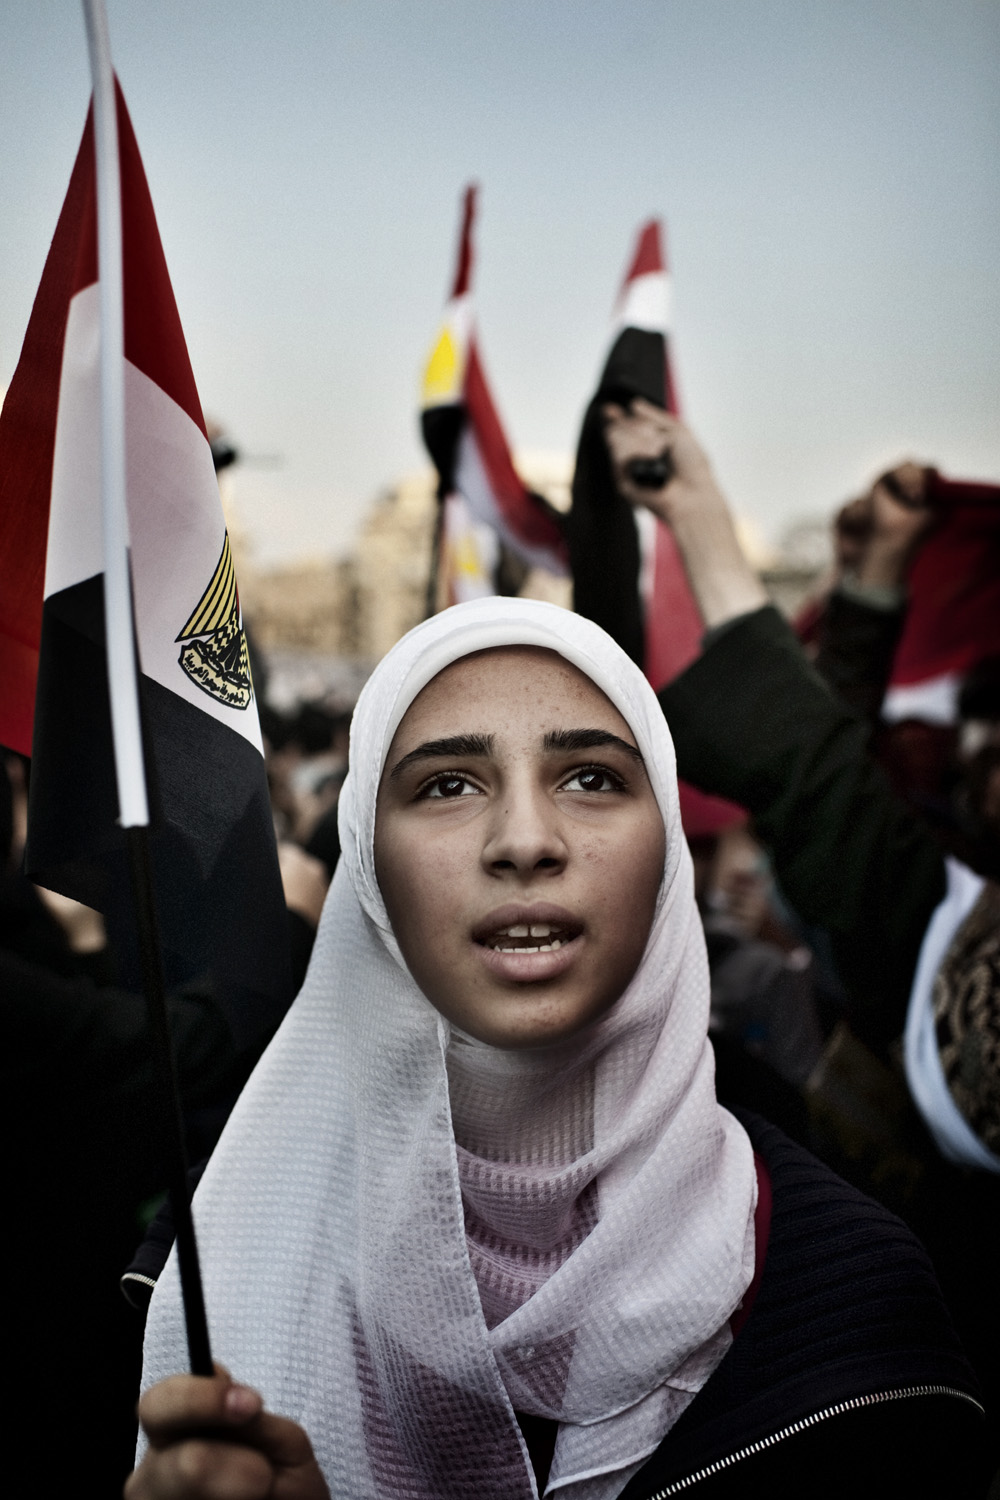 February 8, 2011. Anti-government demonstrator Fatma Garber, 16, in Tahrir Square during the second week of protests against Egyptian president Hosni Mubarak.